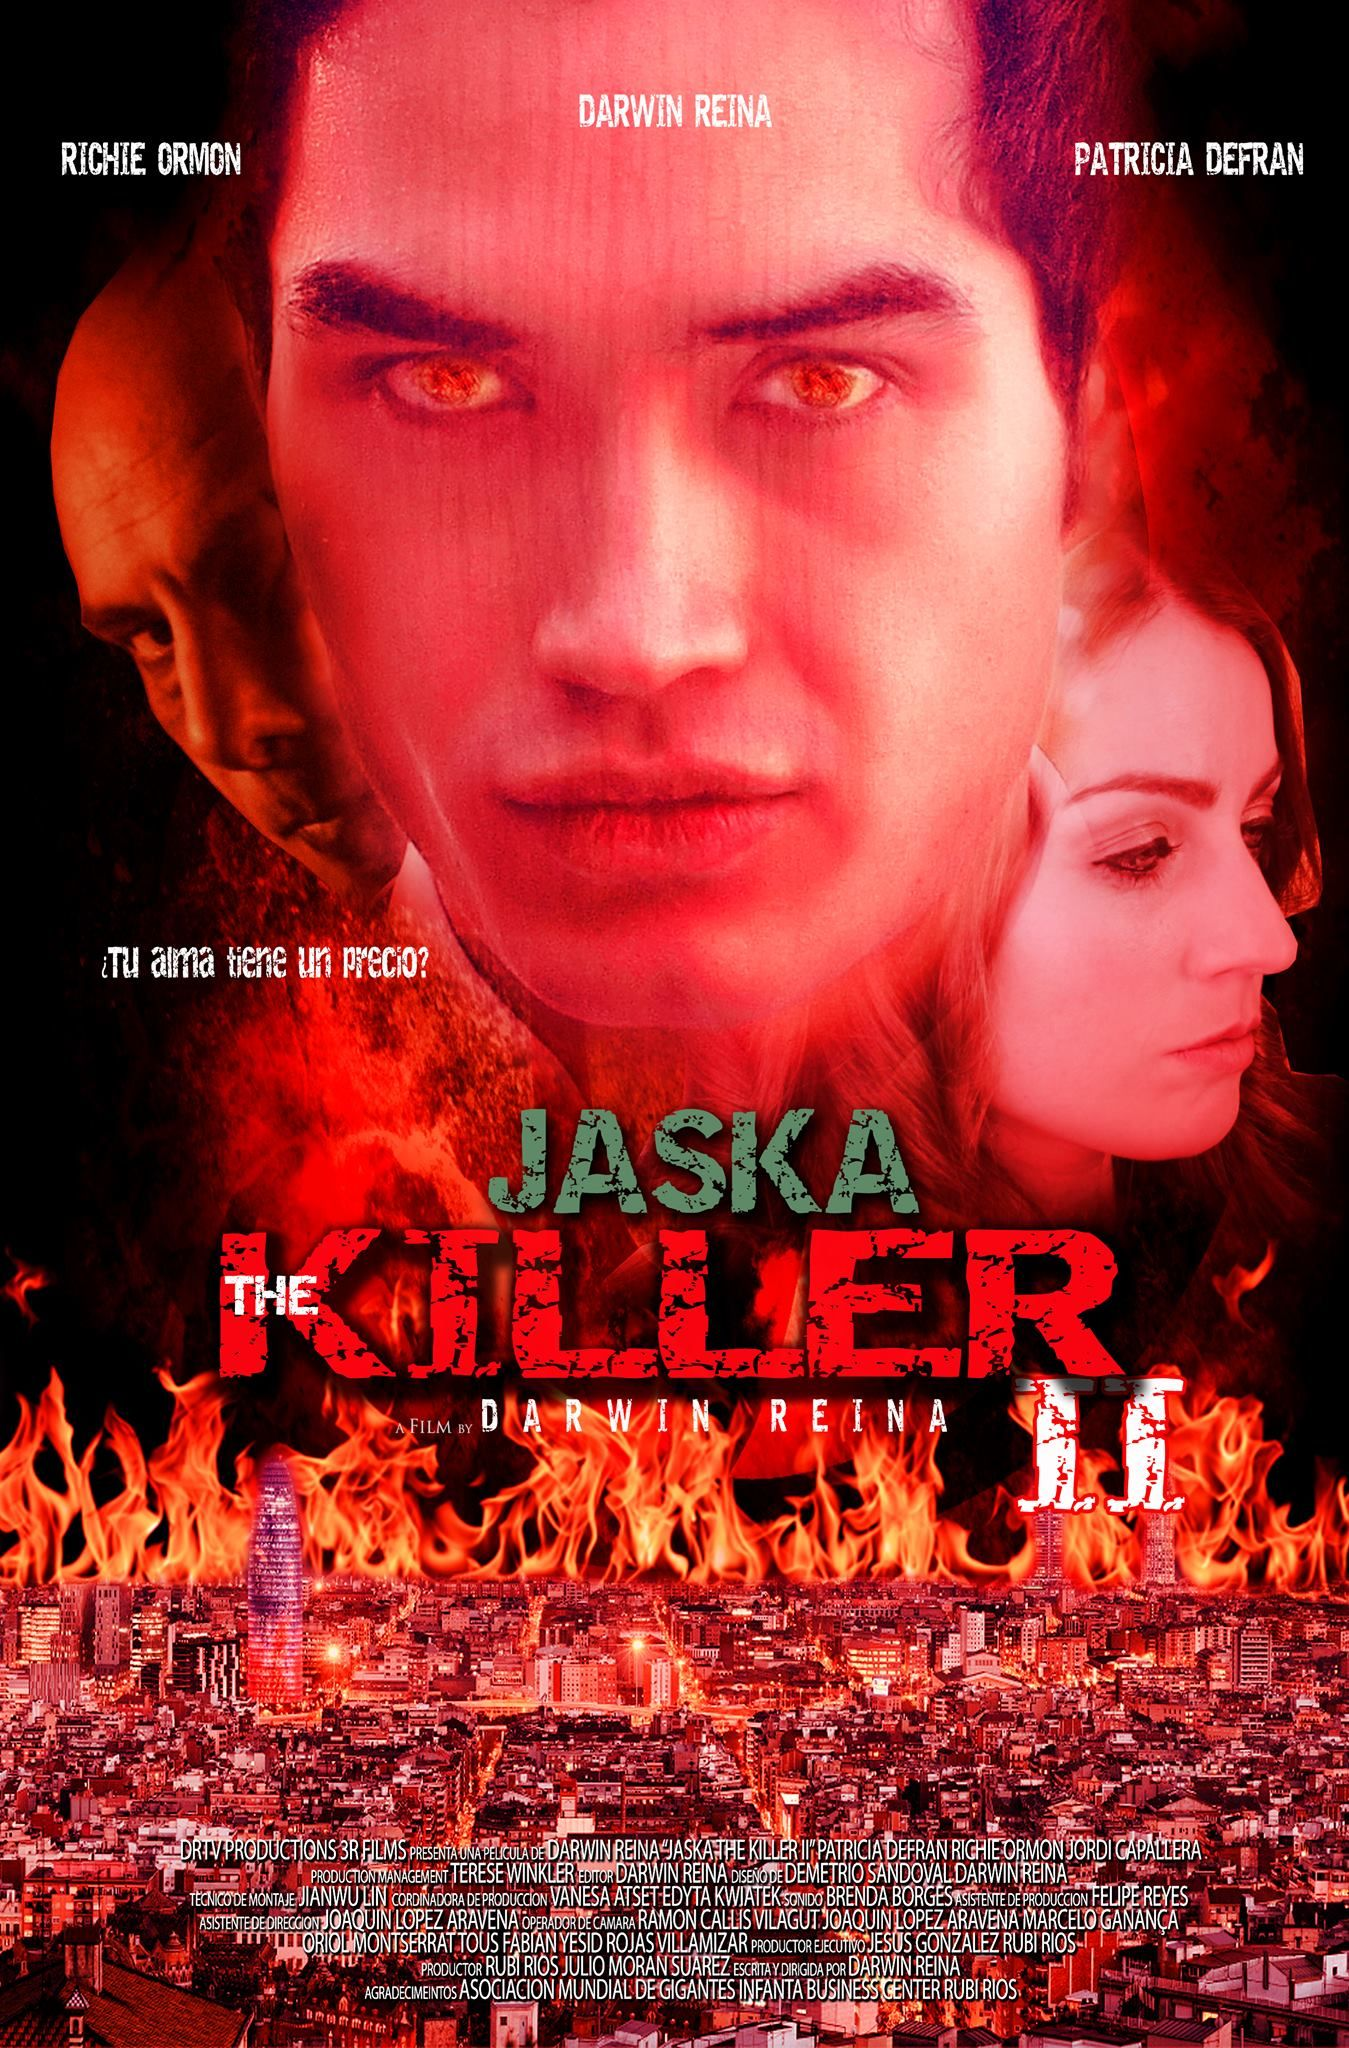 JASKA THE KILLER II